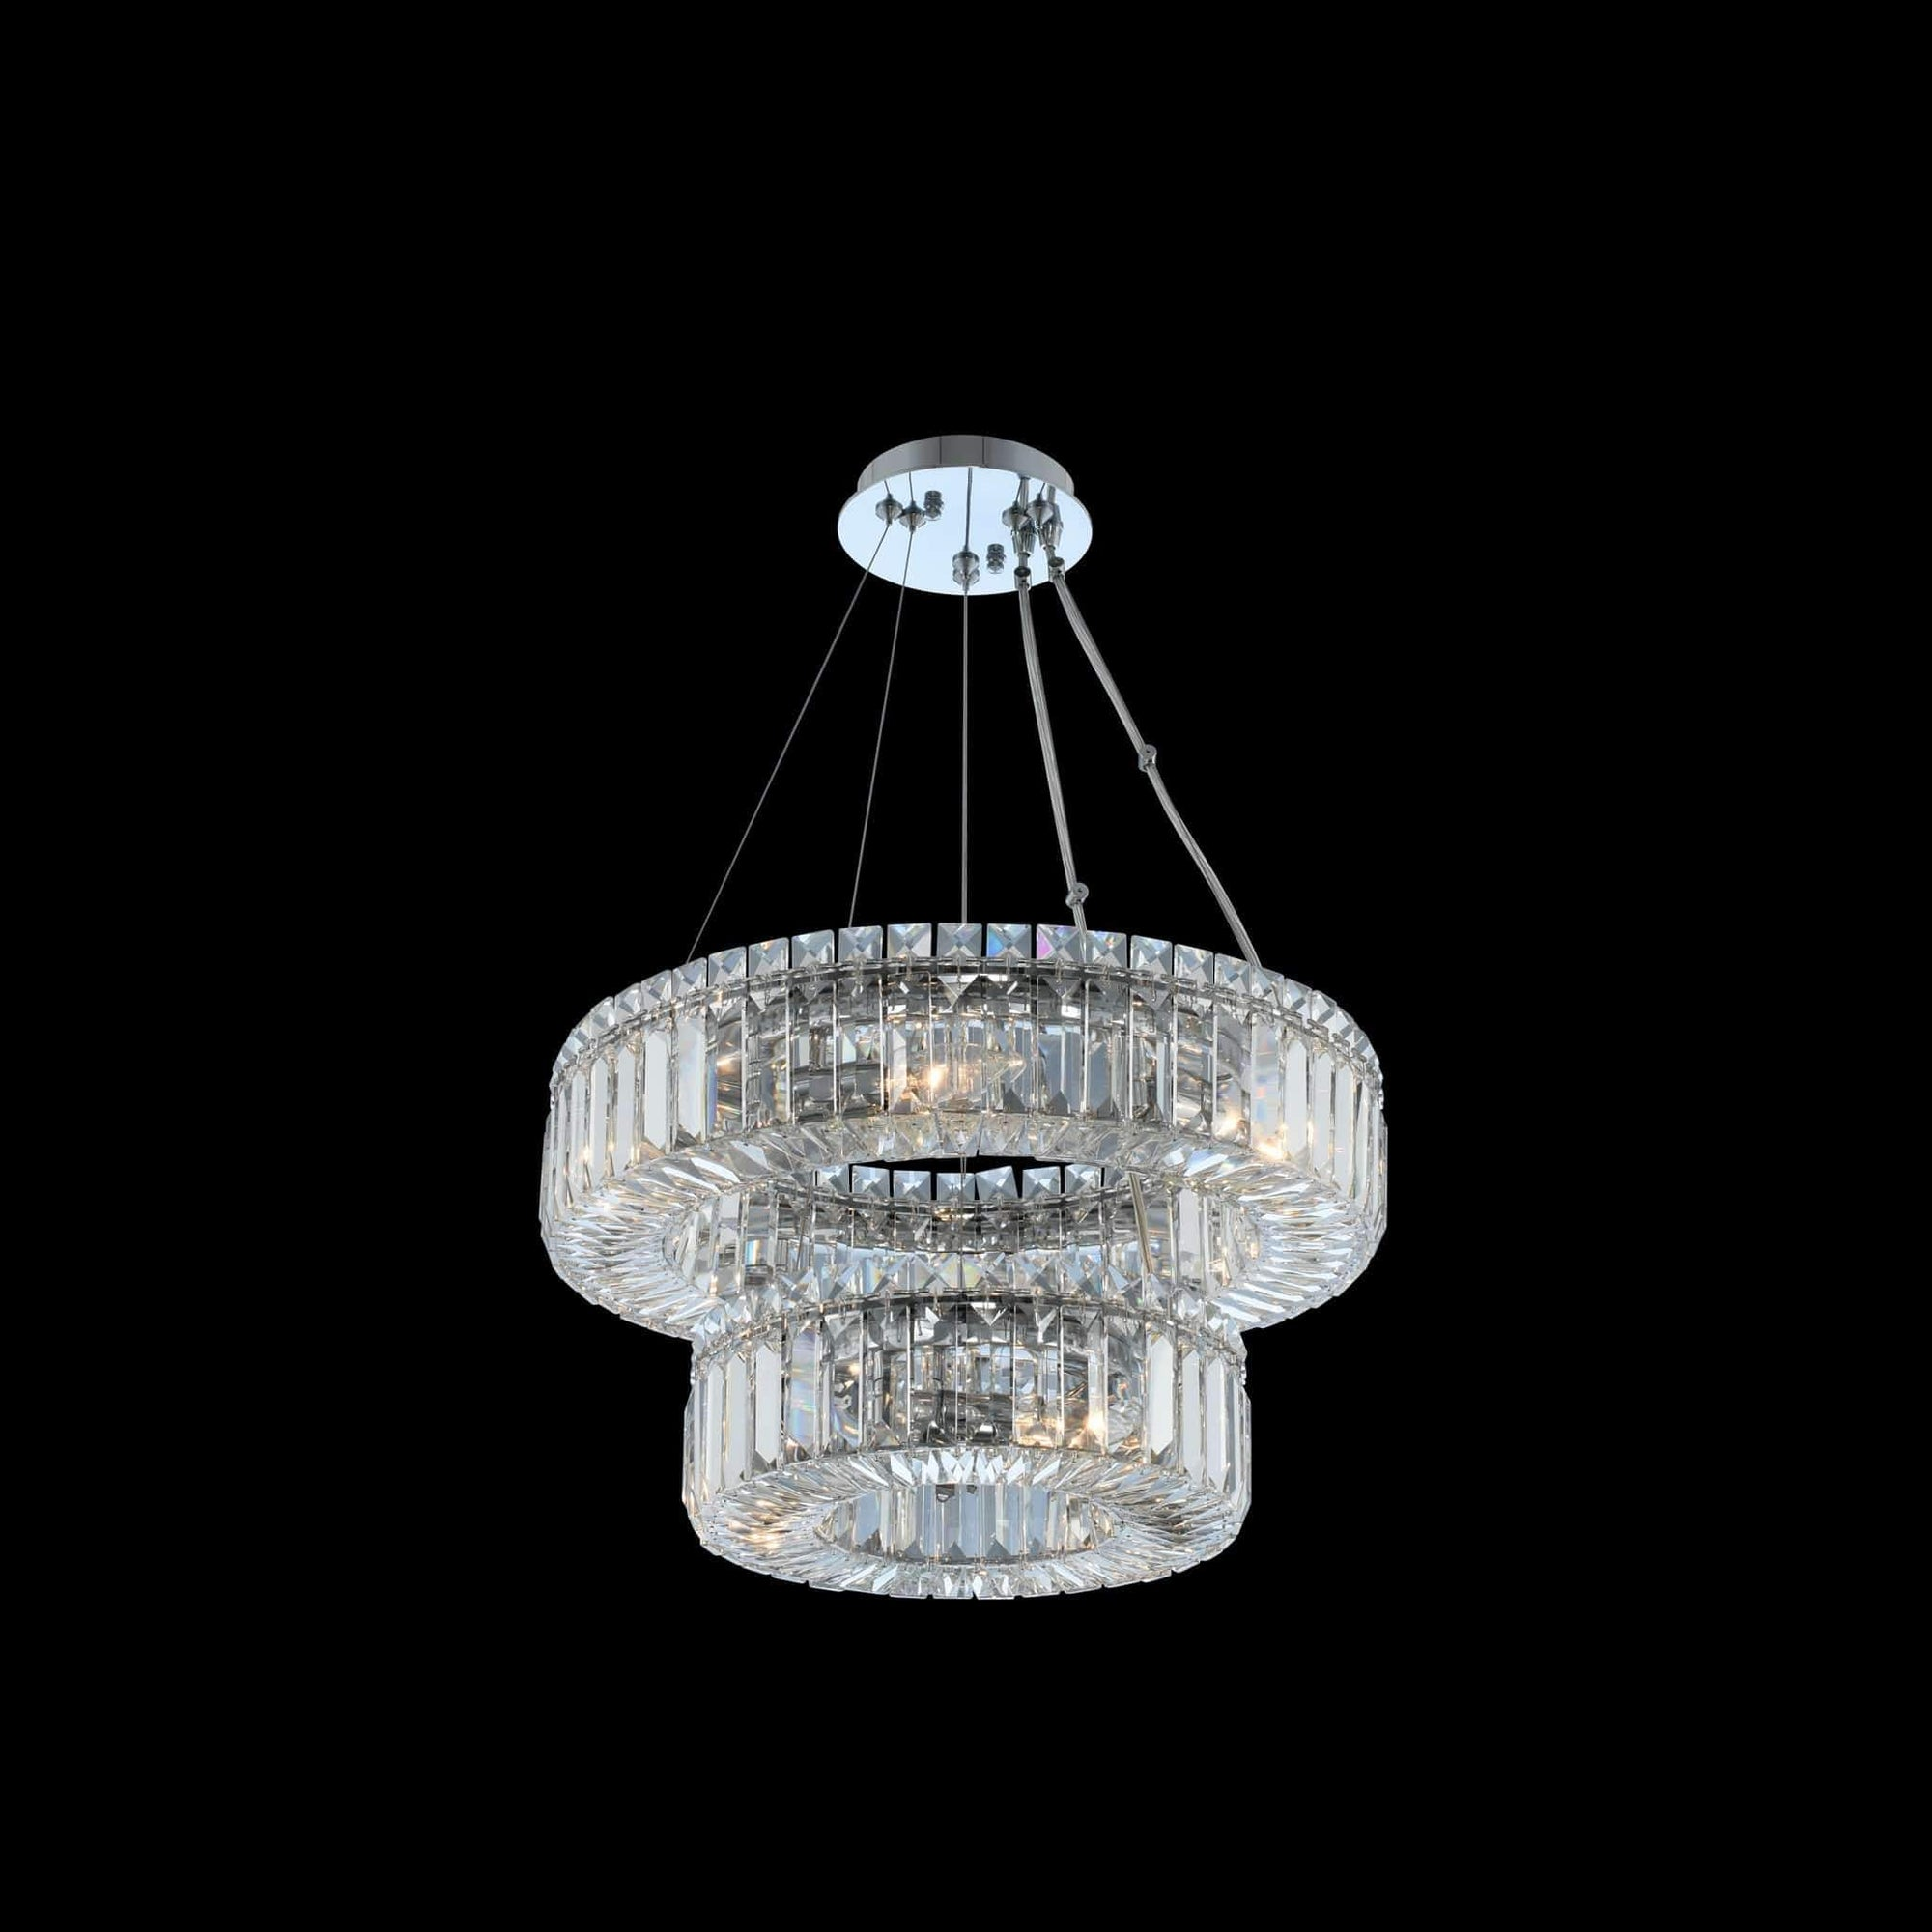 Allegri by Kalco Lighting Pendants Chrome / Firenze Rondelle (12 + 18) Inch 2 Tier Pendant From Allegri by Kalco Lighting 11776